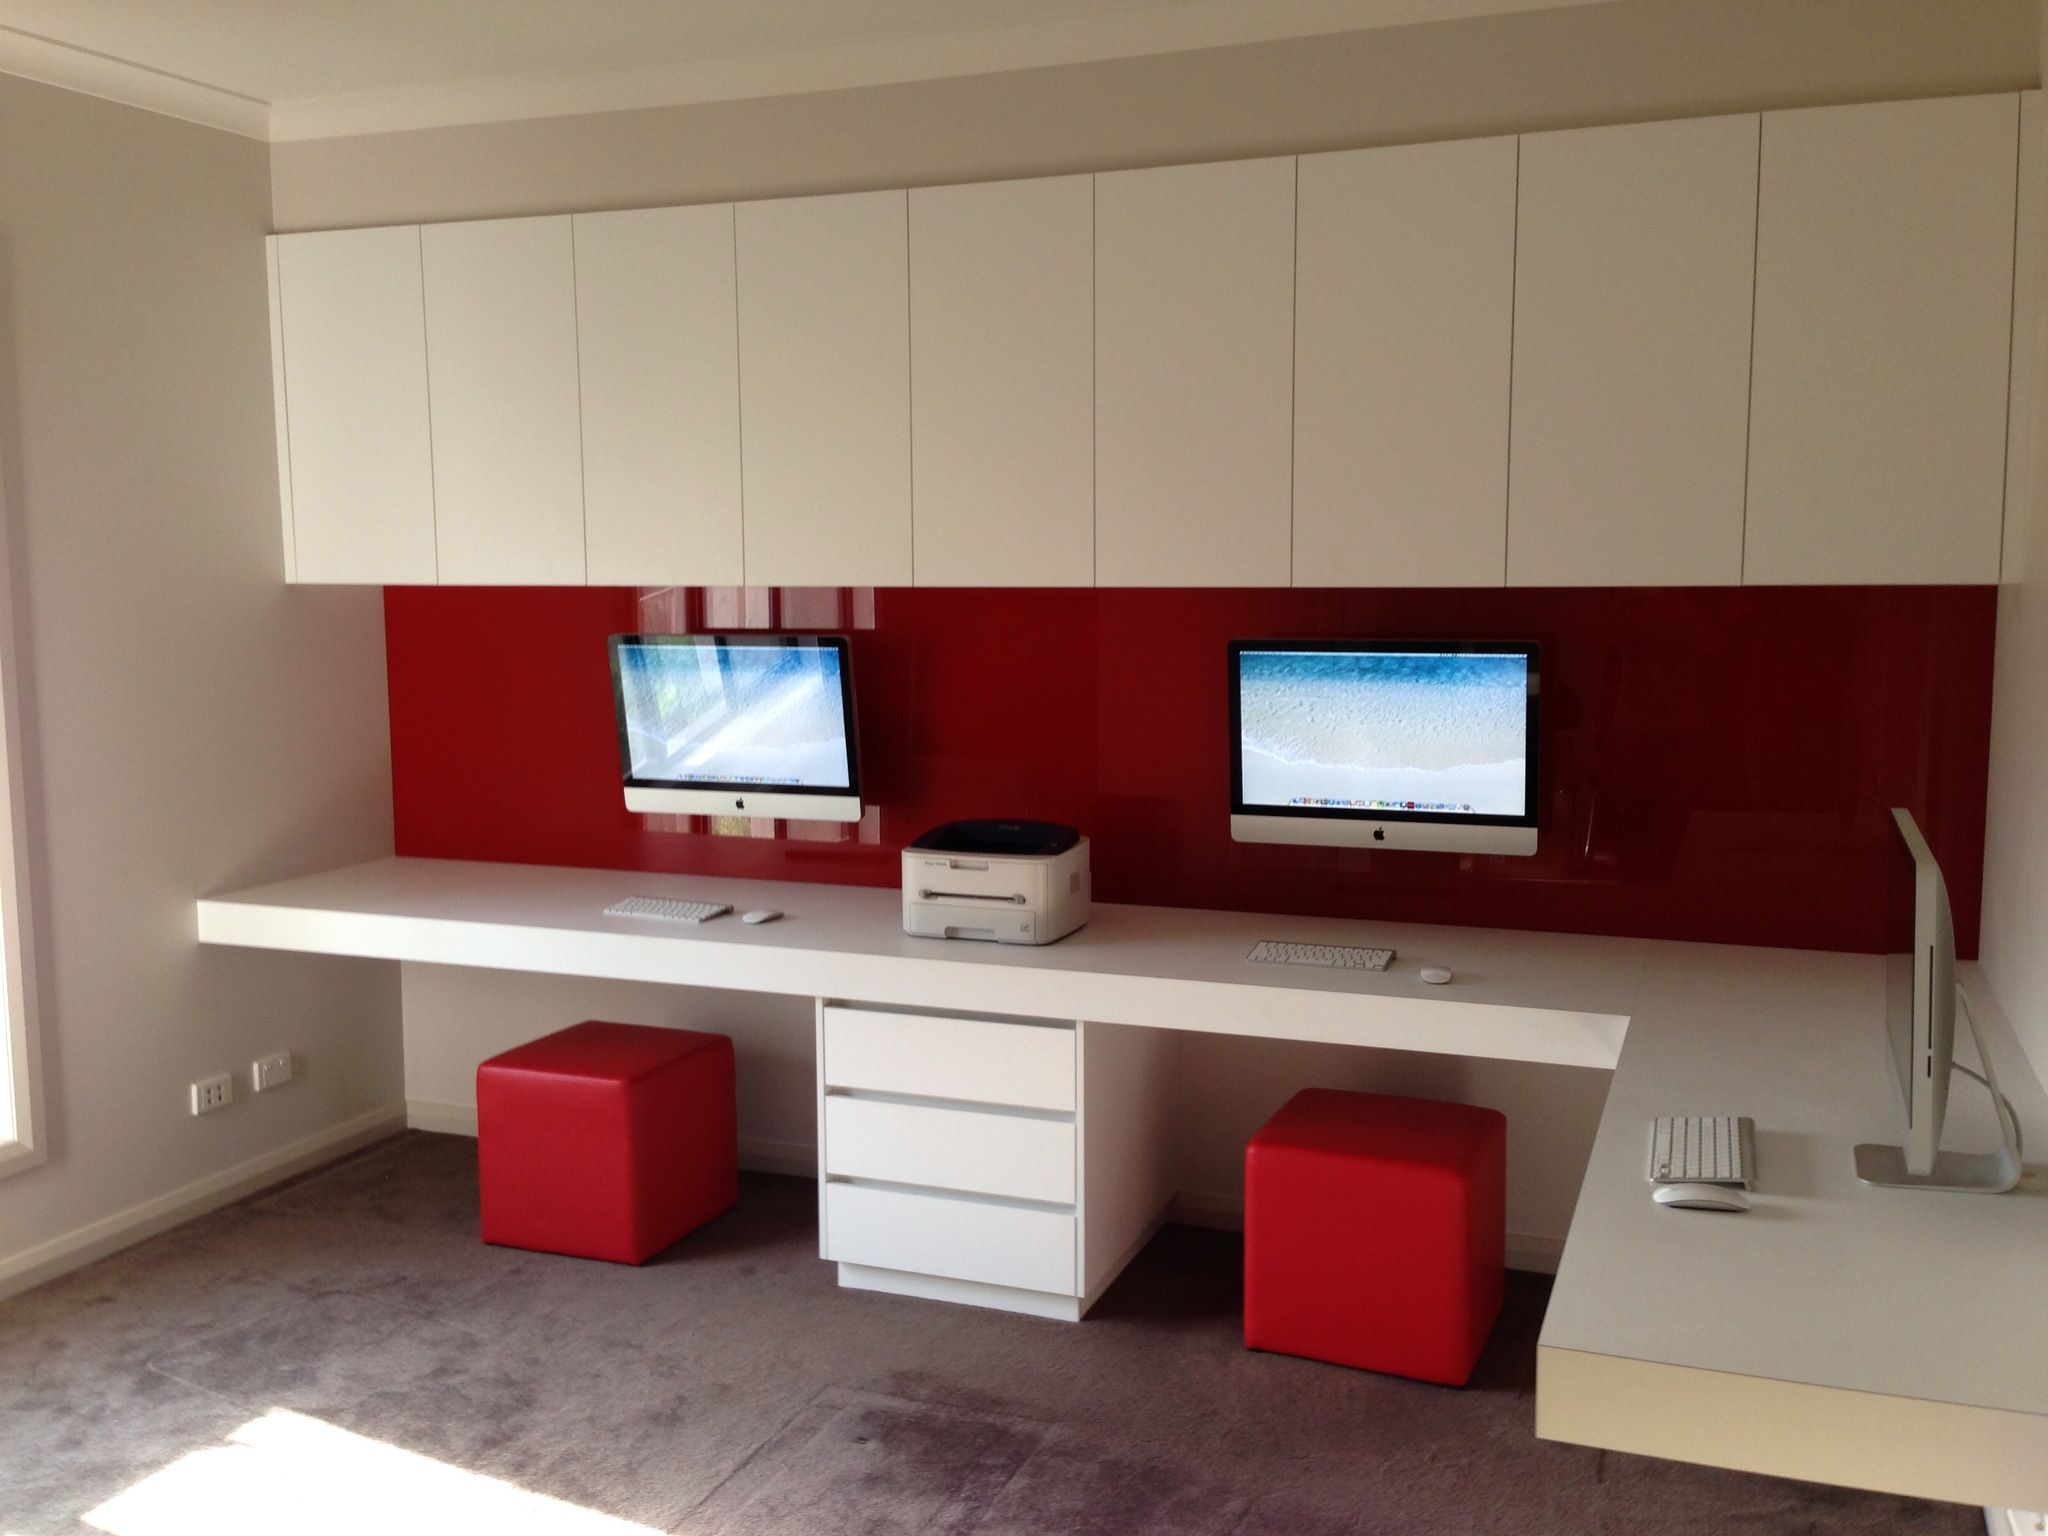 Imac 39 s wall mounted imac home office pinterest wall for Study room wall cabinets